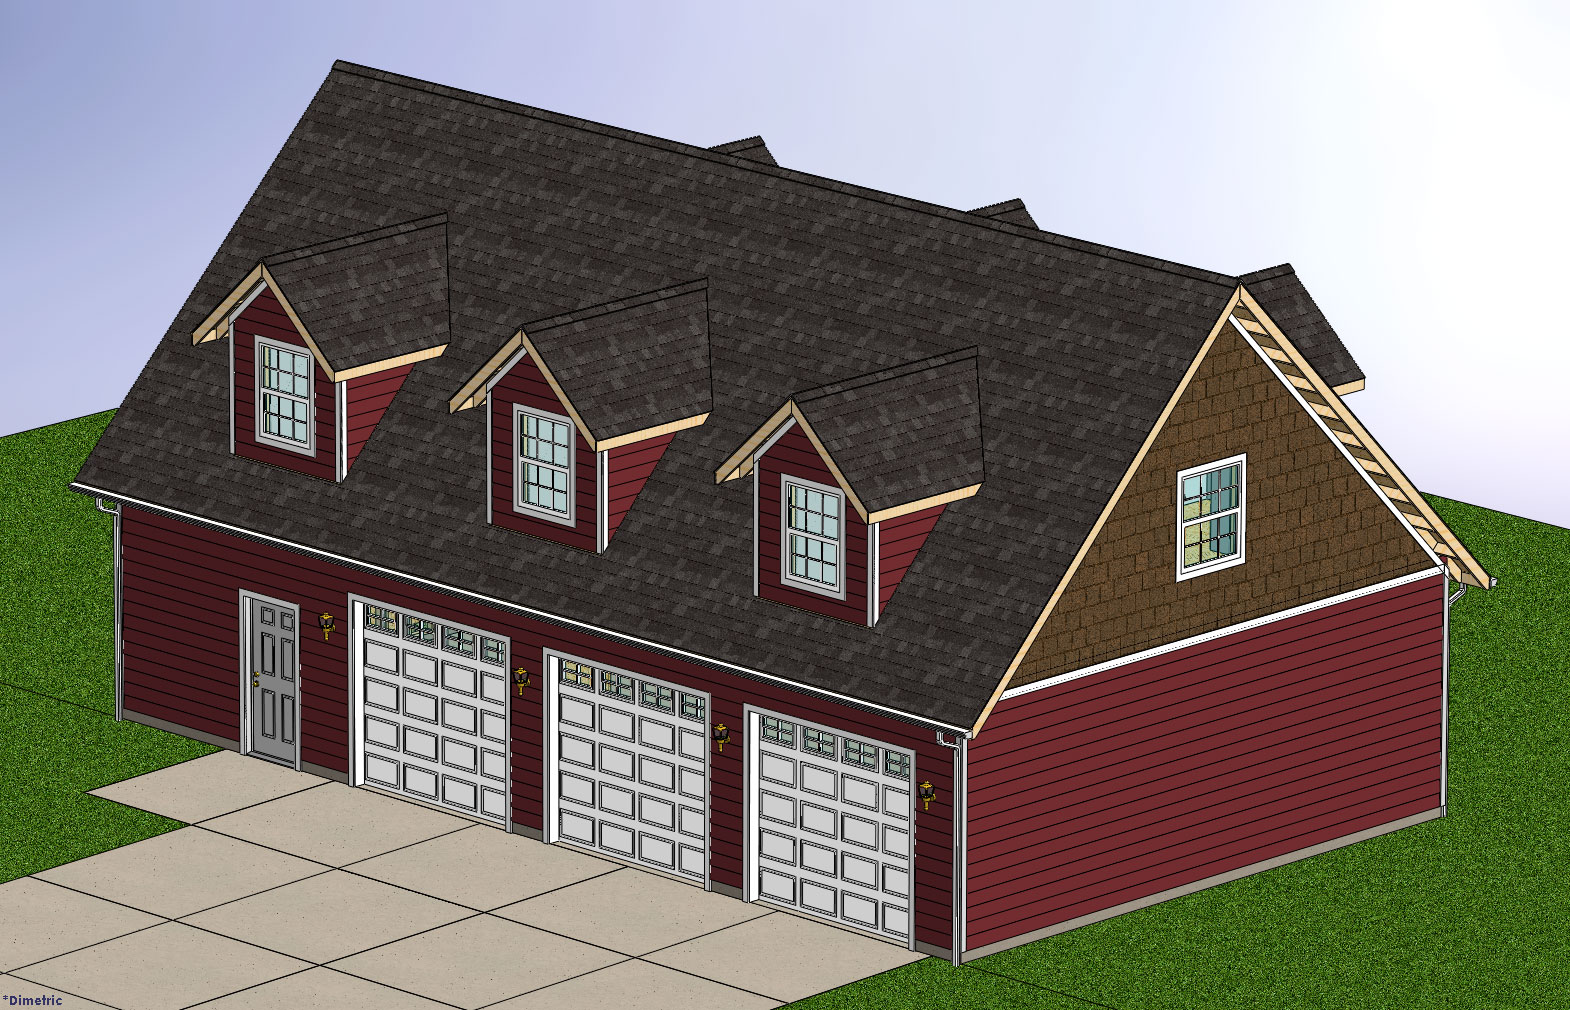 Pole barn design plans Pole barn design plans